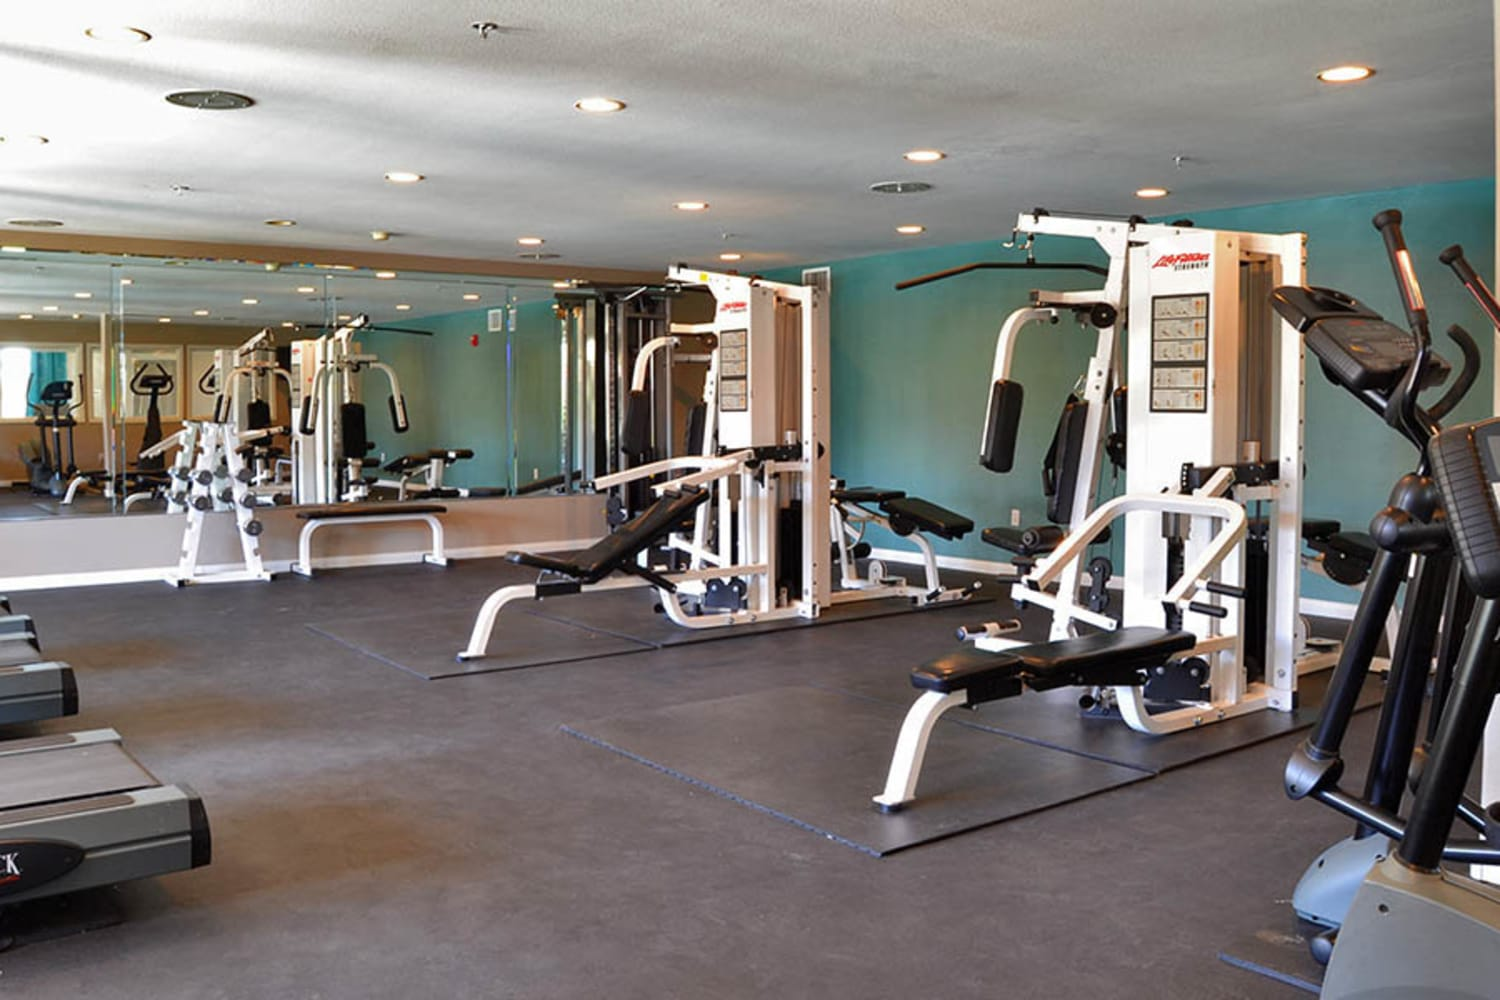 Fitness center at 2150 Arizona Ave South in Chandler, Arizona